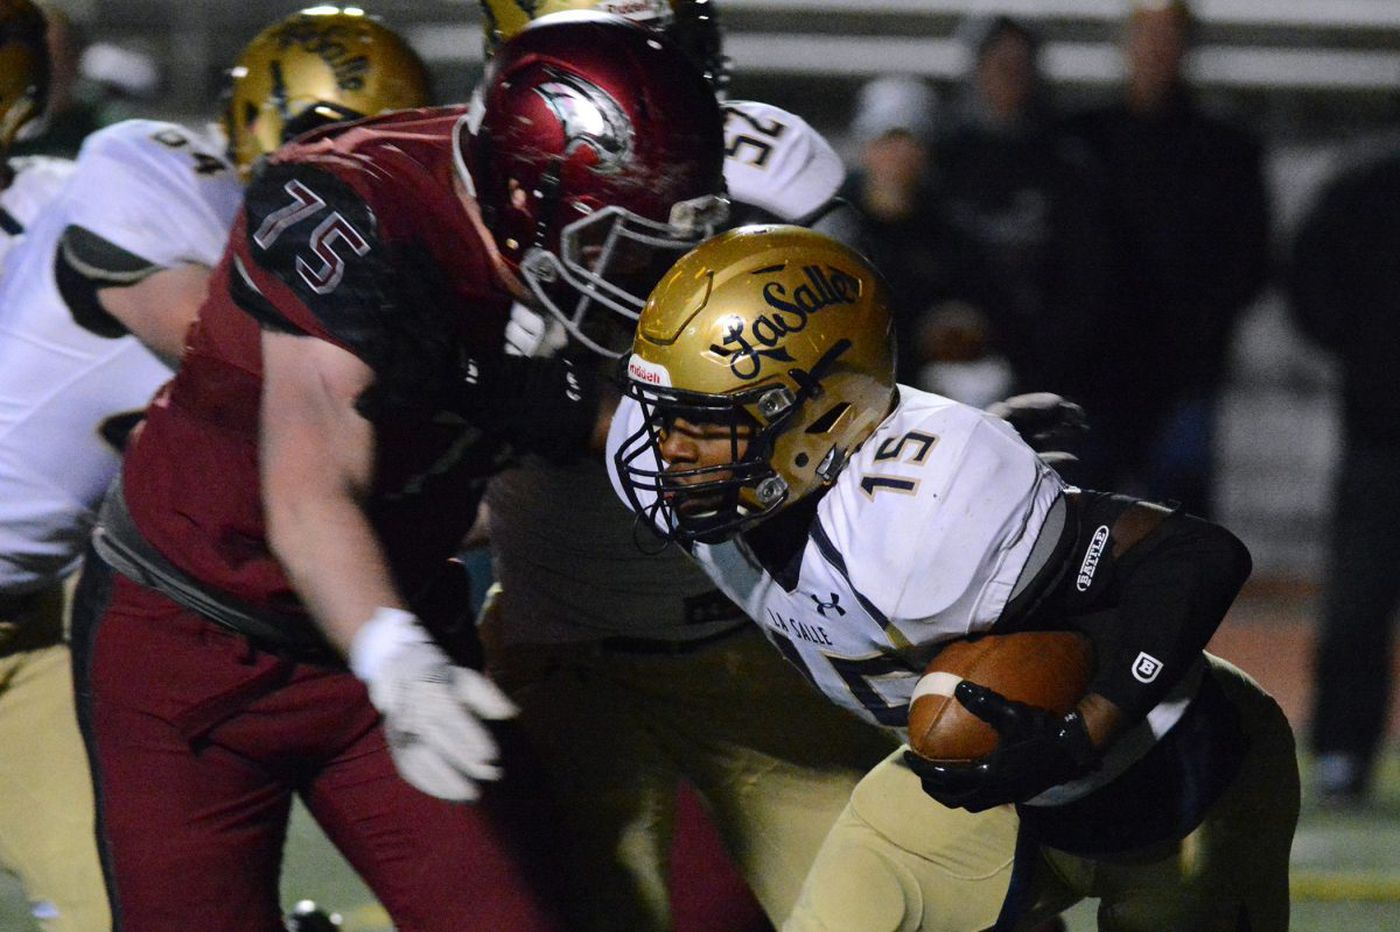 National signing day roundup: St. Joe's Prep's Ryan Bryce joins Army